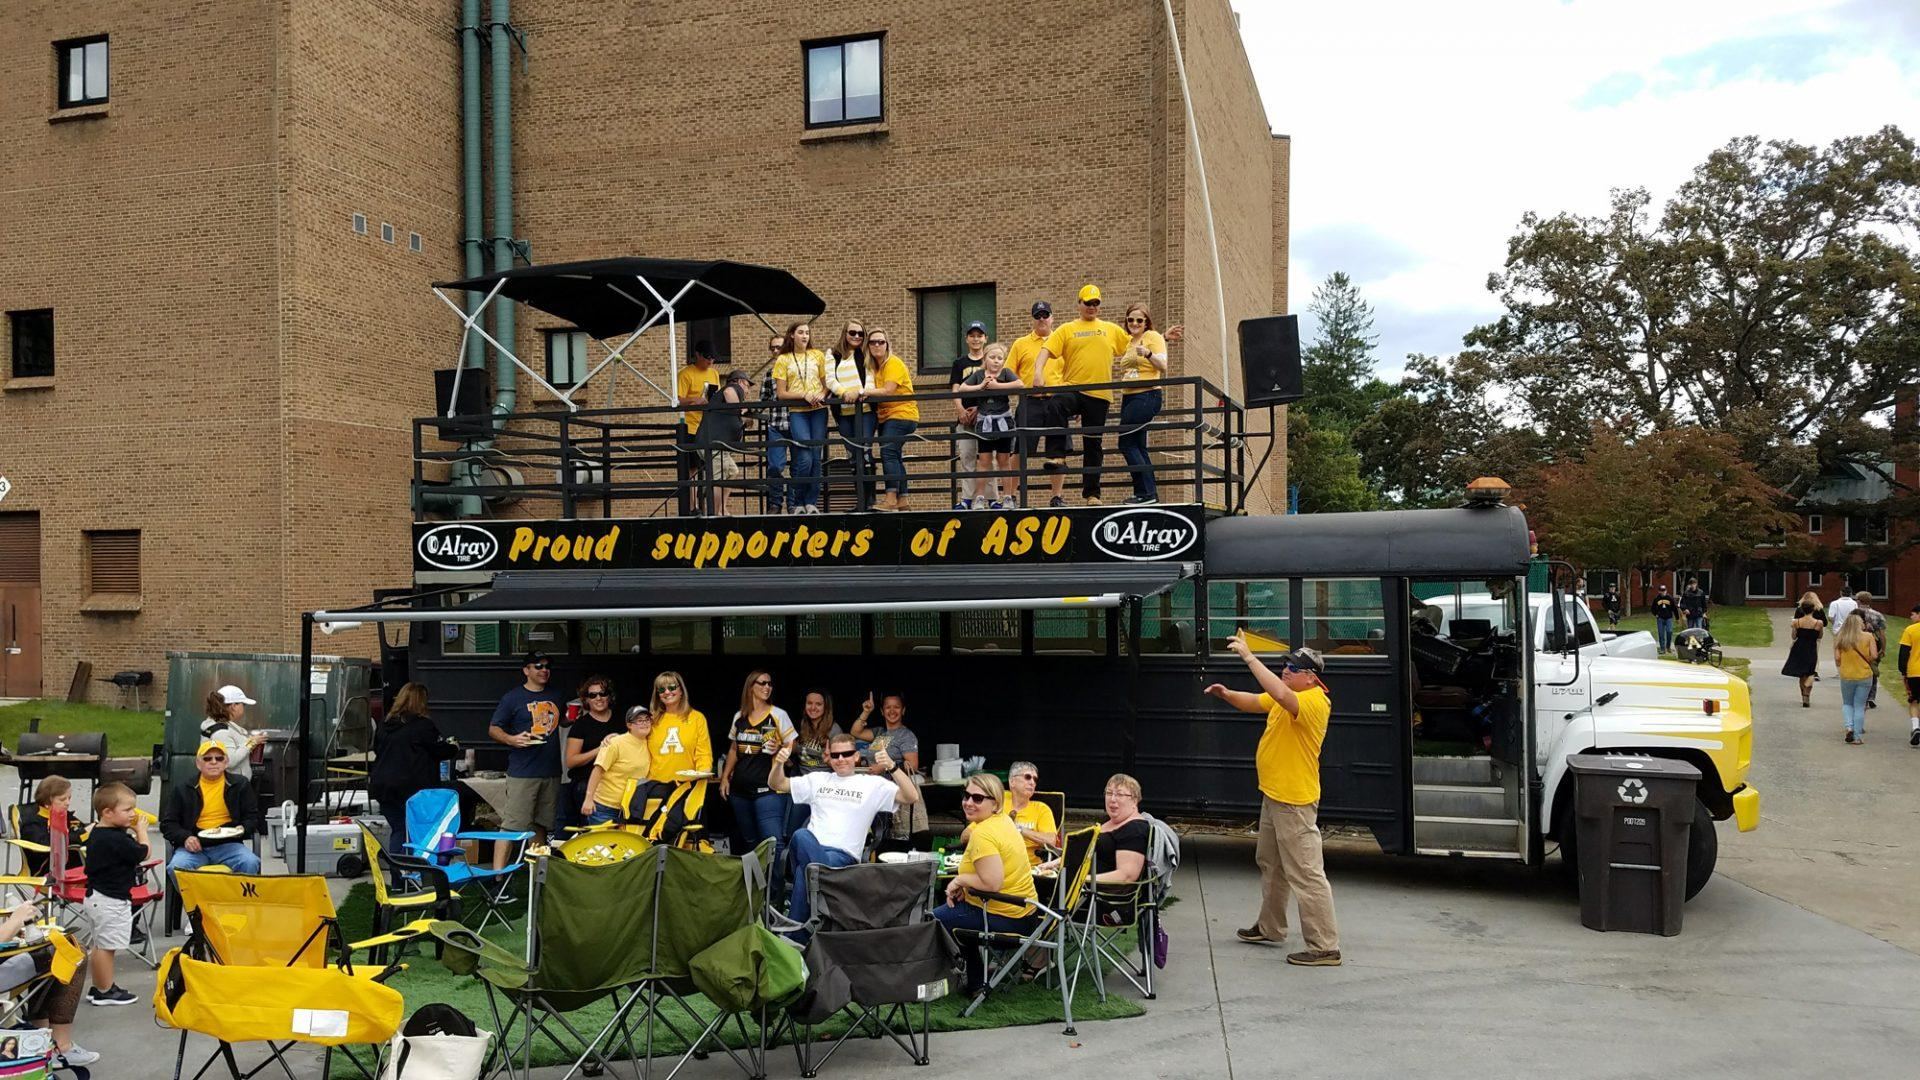 Tailgating at Appalachian State: A unique culture